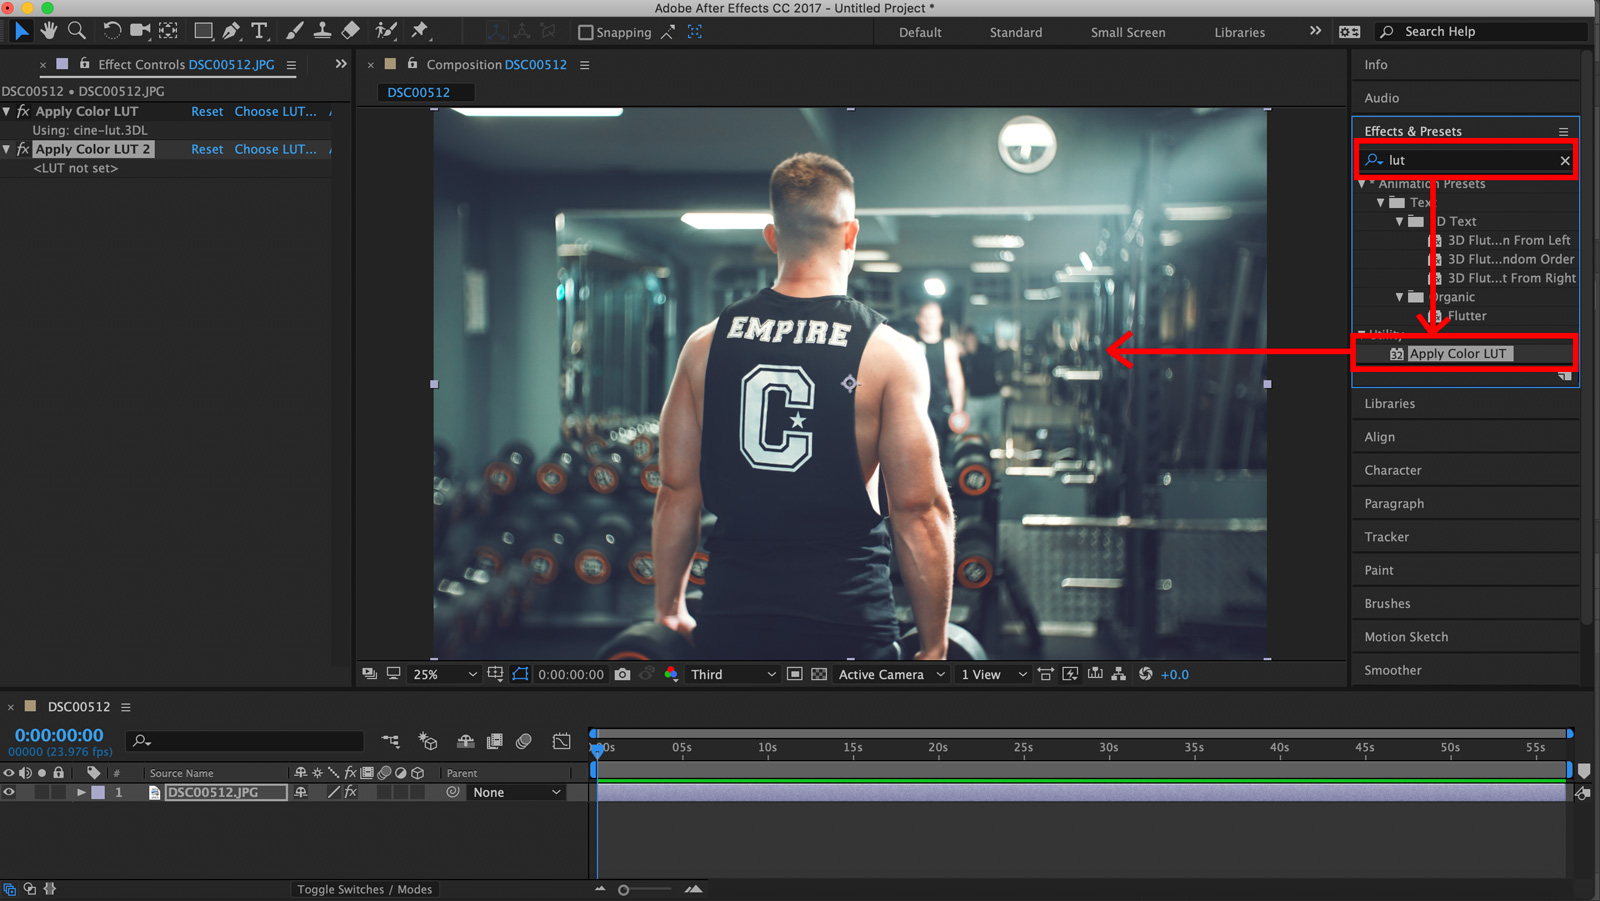 How to use lut preset packs in After Effects